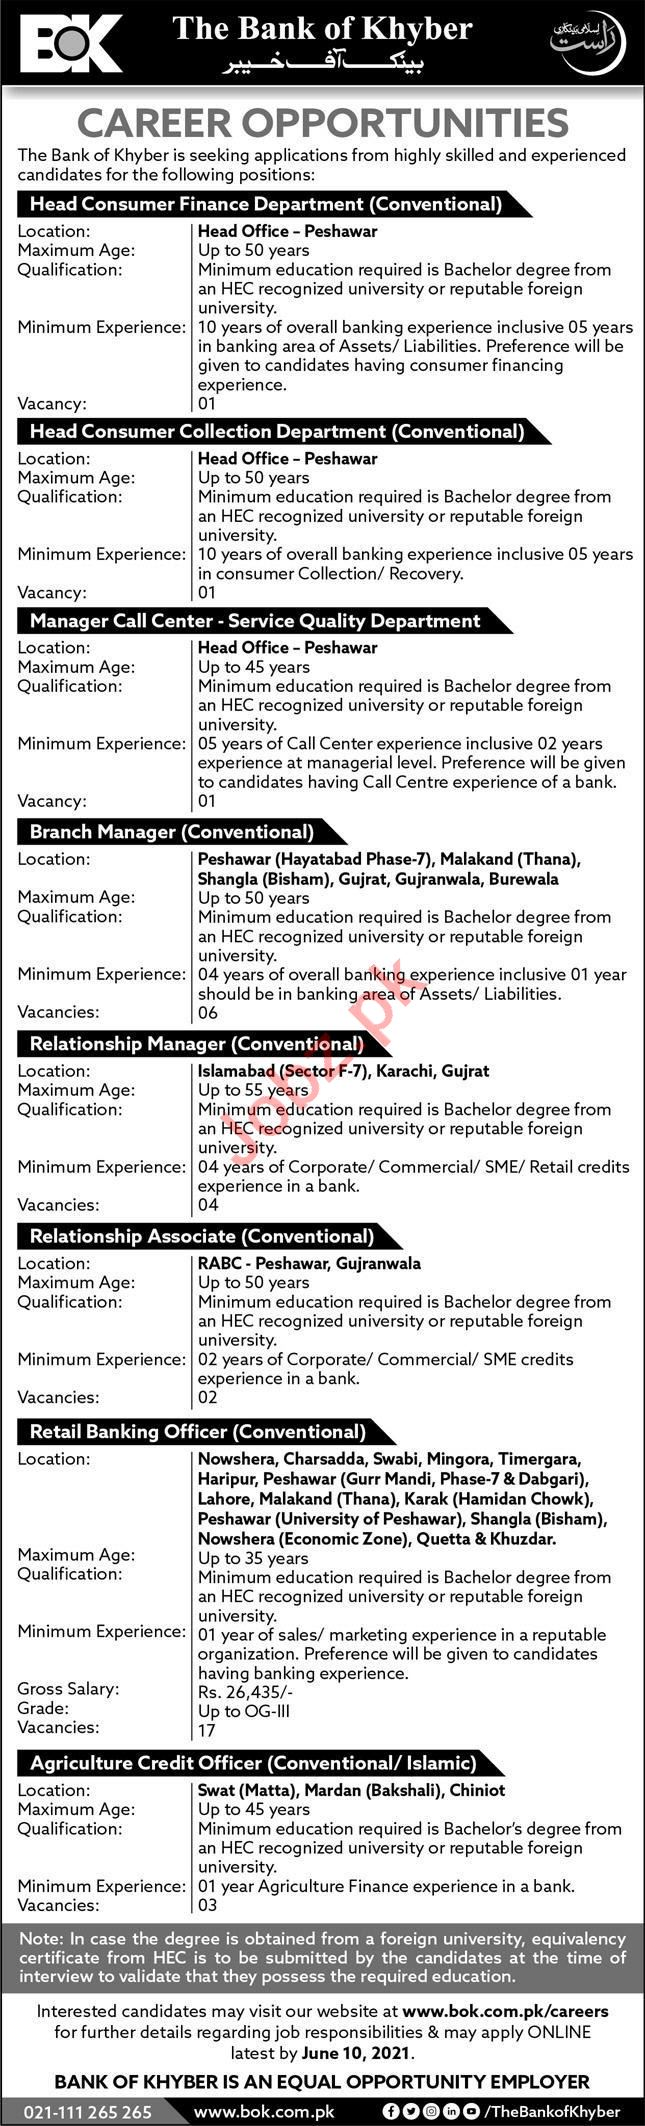 The Bank of Khyber BOK Jobs 2021 for Branch Manager